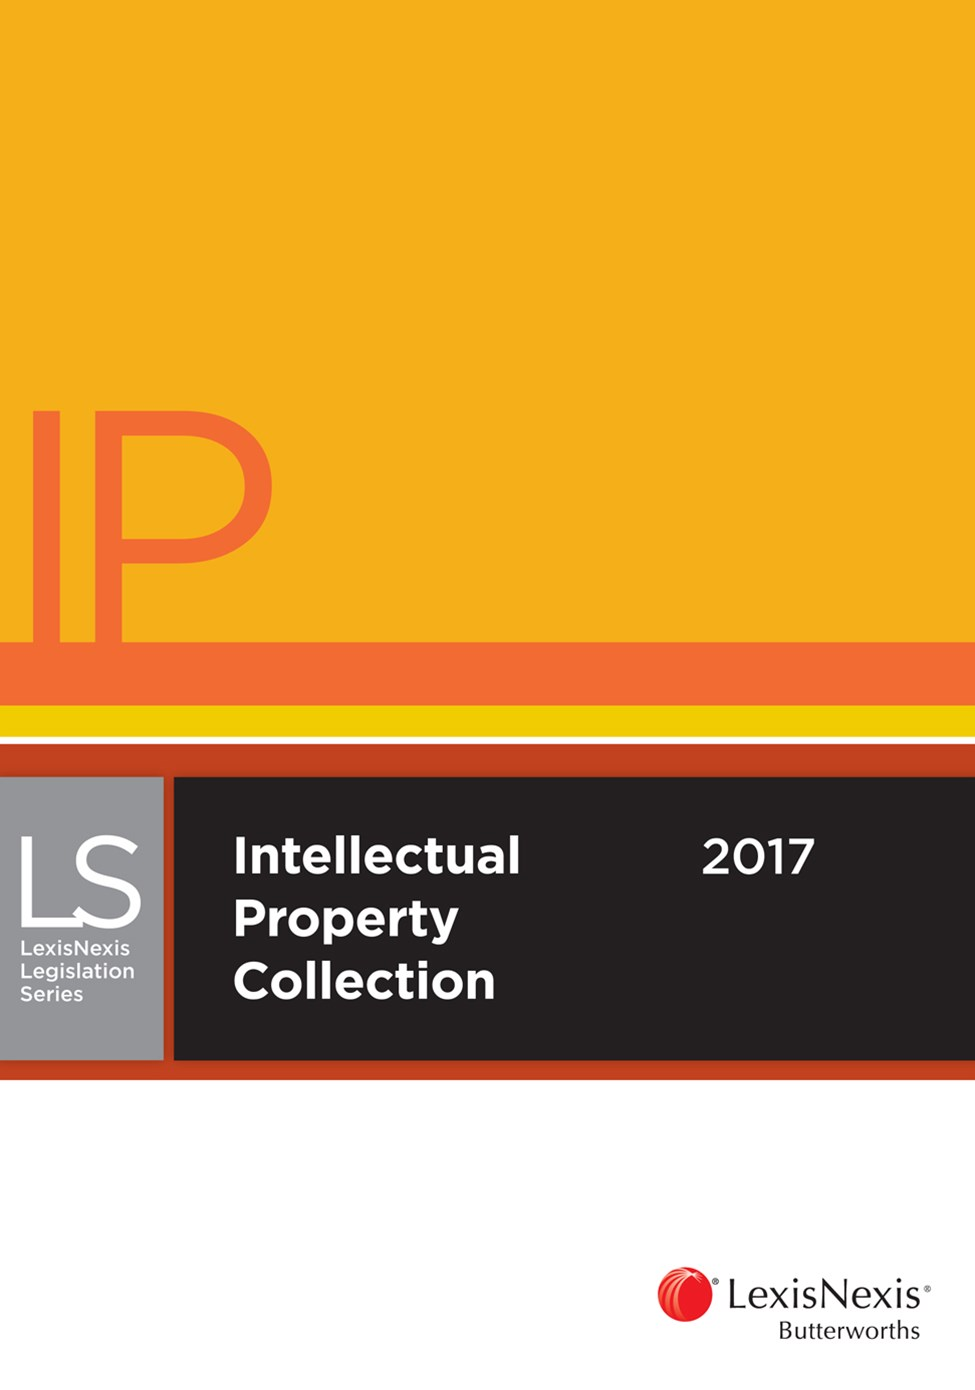 LexisNexis Legislation Series Intellectual Property Collection 2017